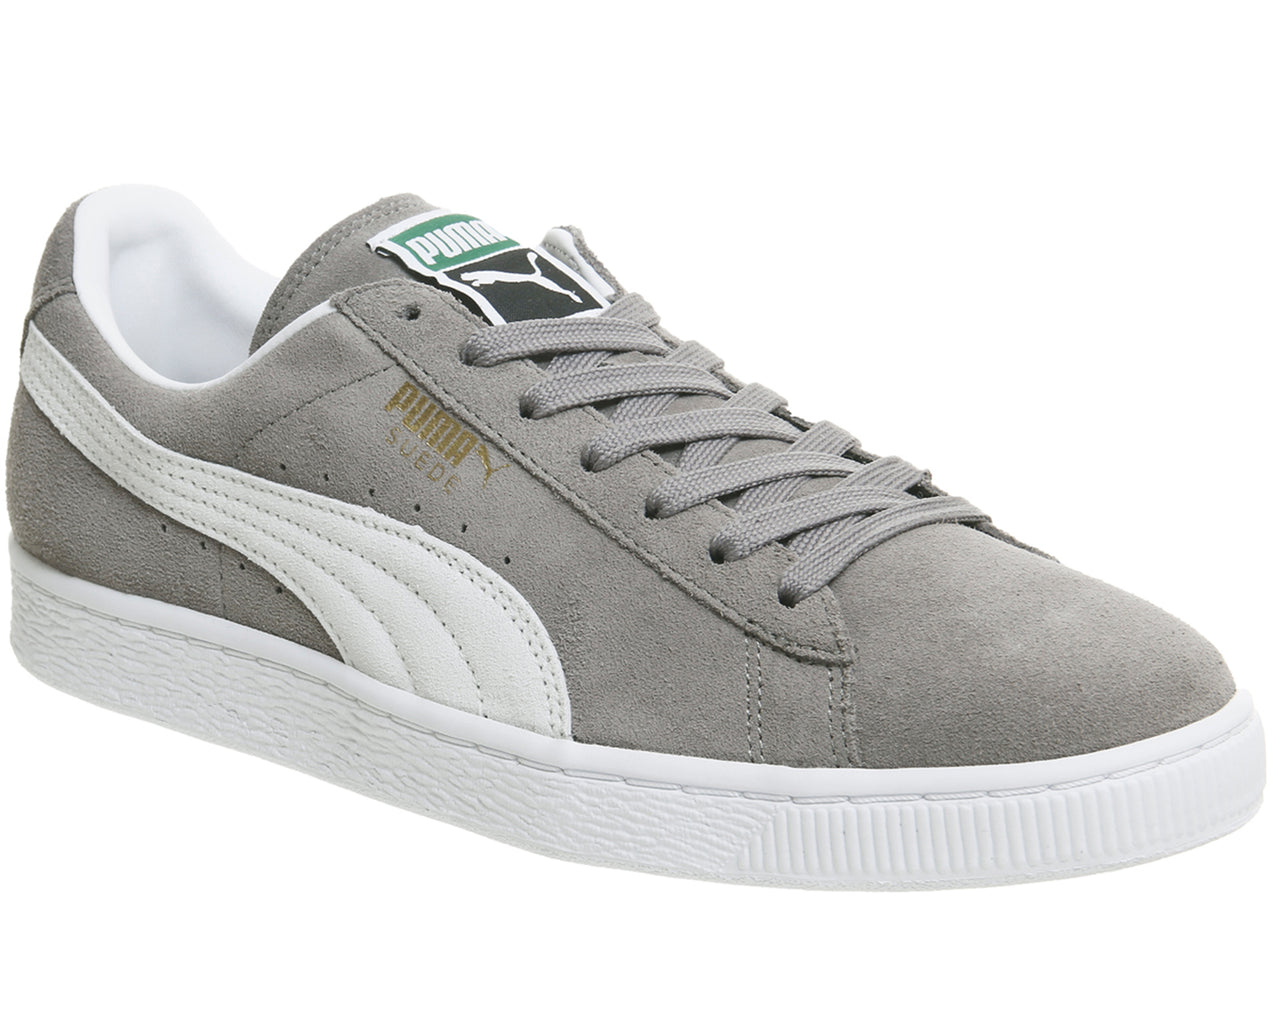 Unisex Puma Suede Classic Grey White Trainers – OFFCUTS SHOES by OFFICE a96697bc54b8